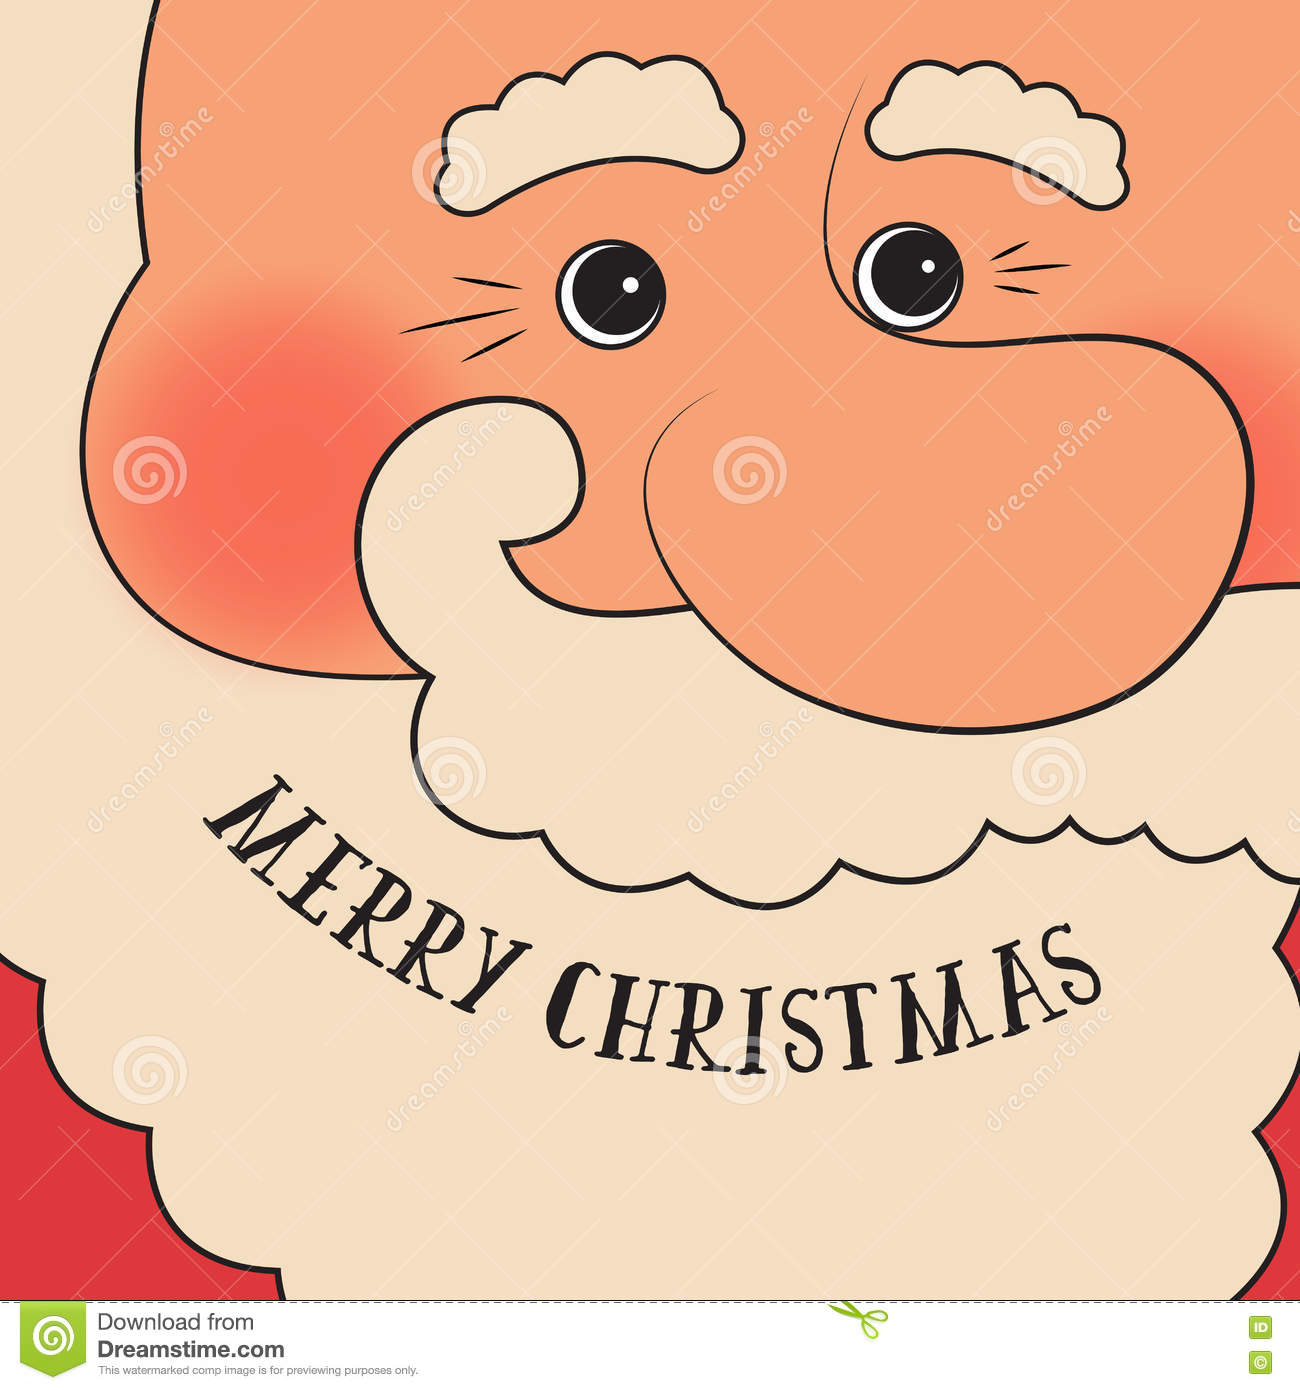 Retro Styled Christmas Card With Santa Claus - Template With Copy ...